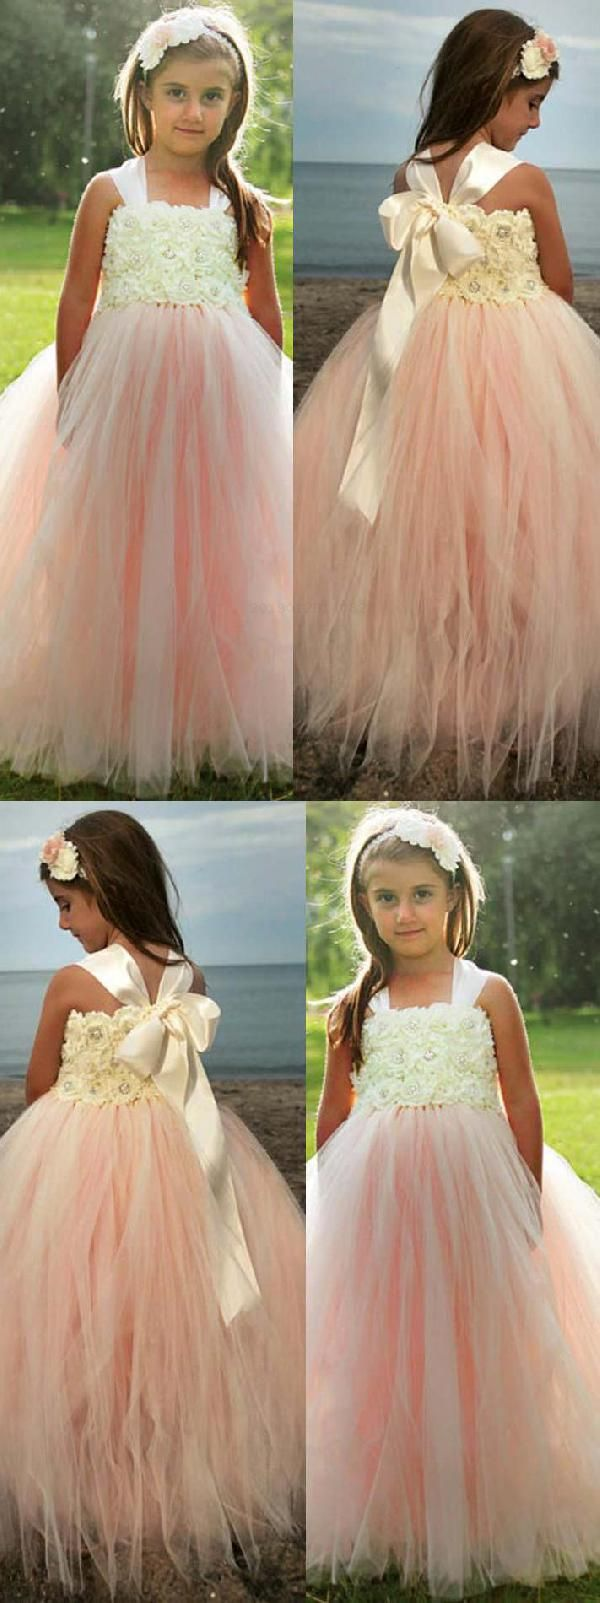 Discount Magnificent Bridesmaid Dresses A-Line Adorable A-line Pink Long Flower Girl Dress With Ribbon